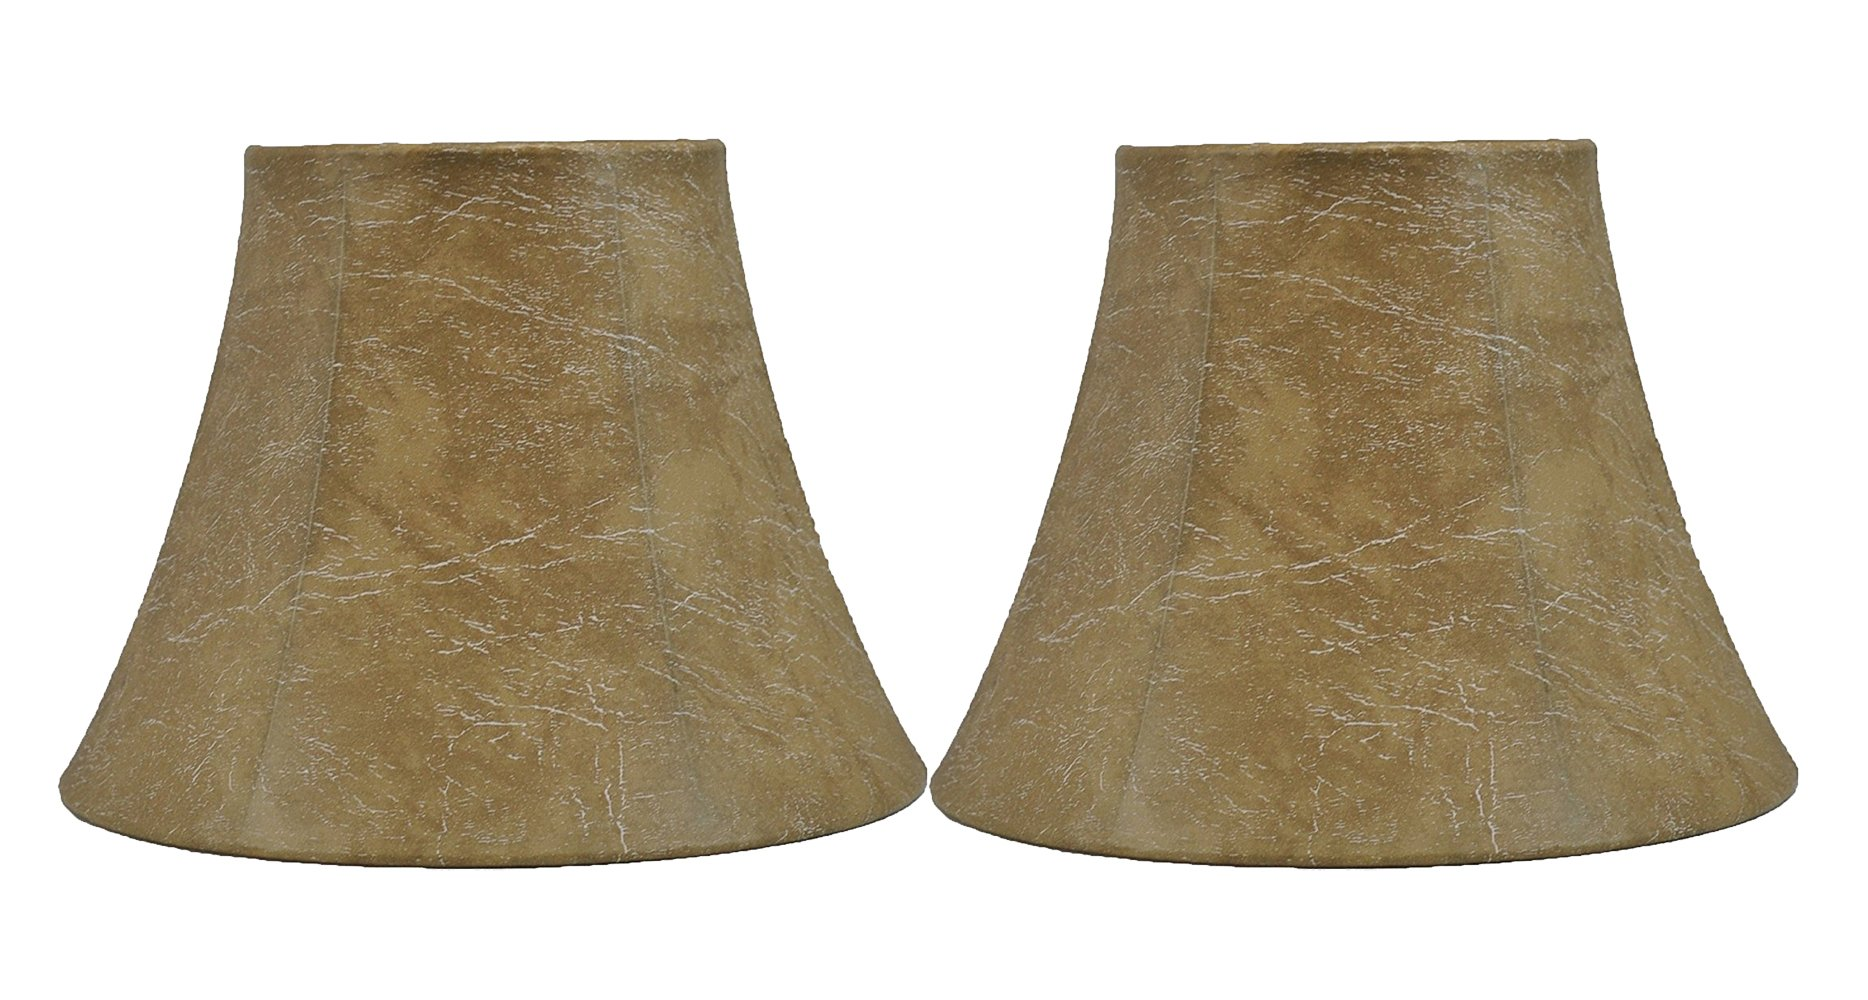 Urbanest Softback Bell Lamp Shade, Faux Leather, 5-inch by 9-inch by 7-inch, Spider-Fitter, Set of 2